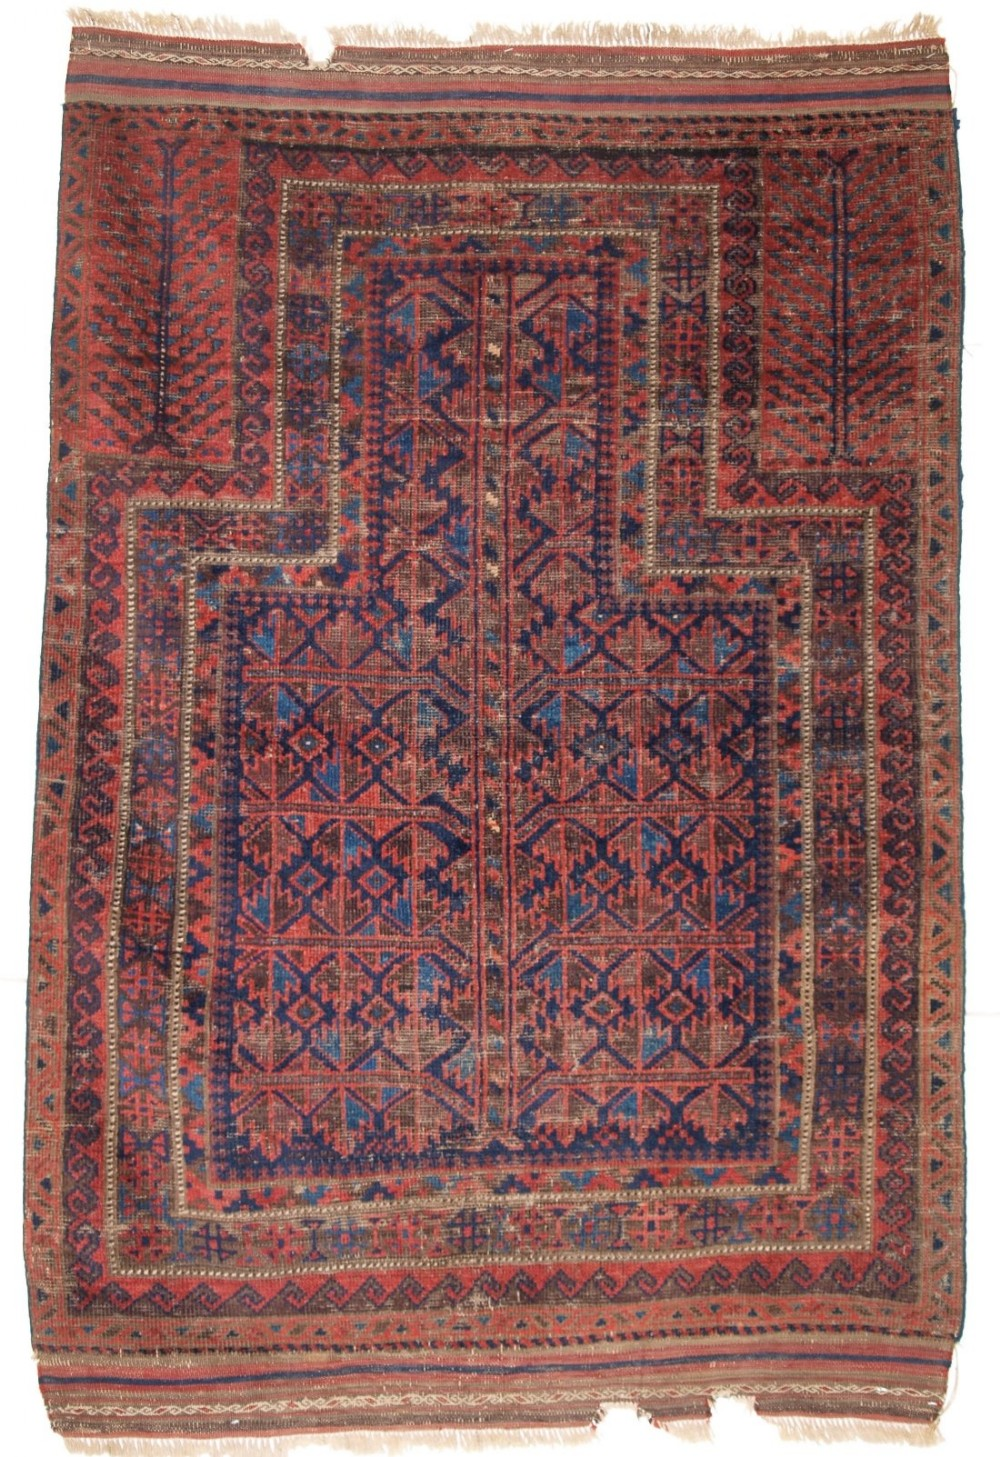 antique blue ground timuri baluch prayer rug mid 19th century